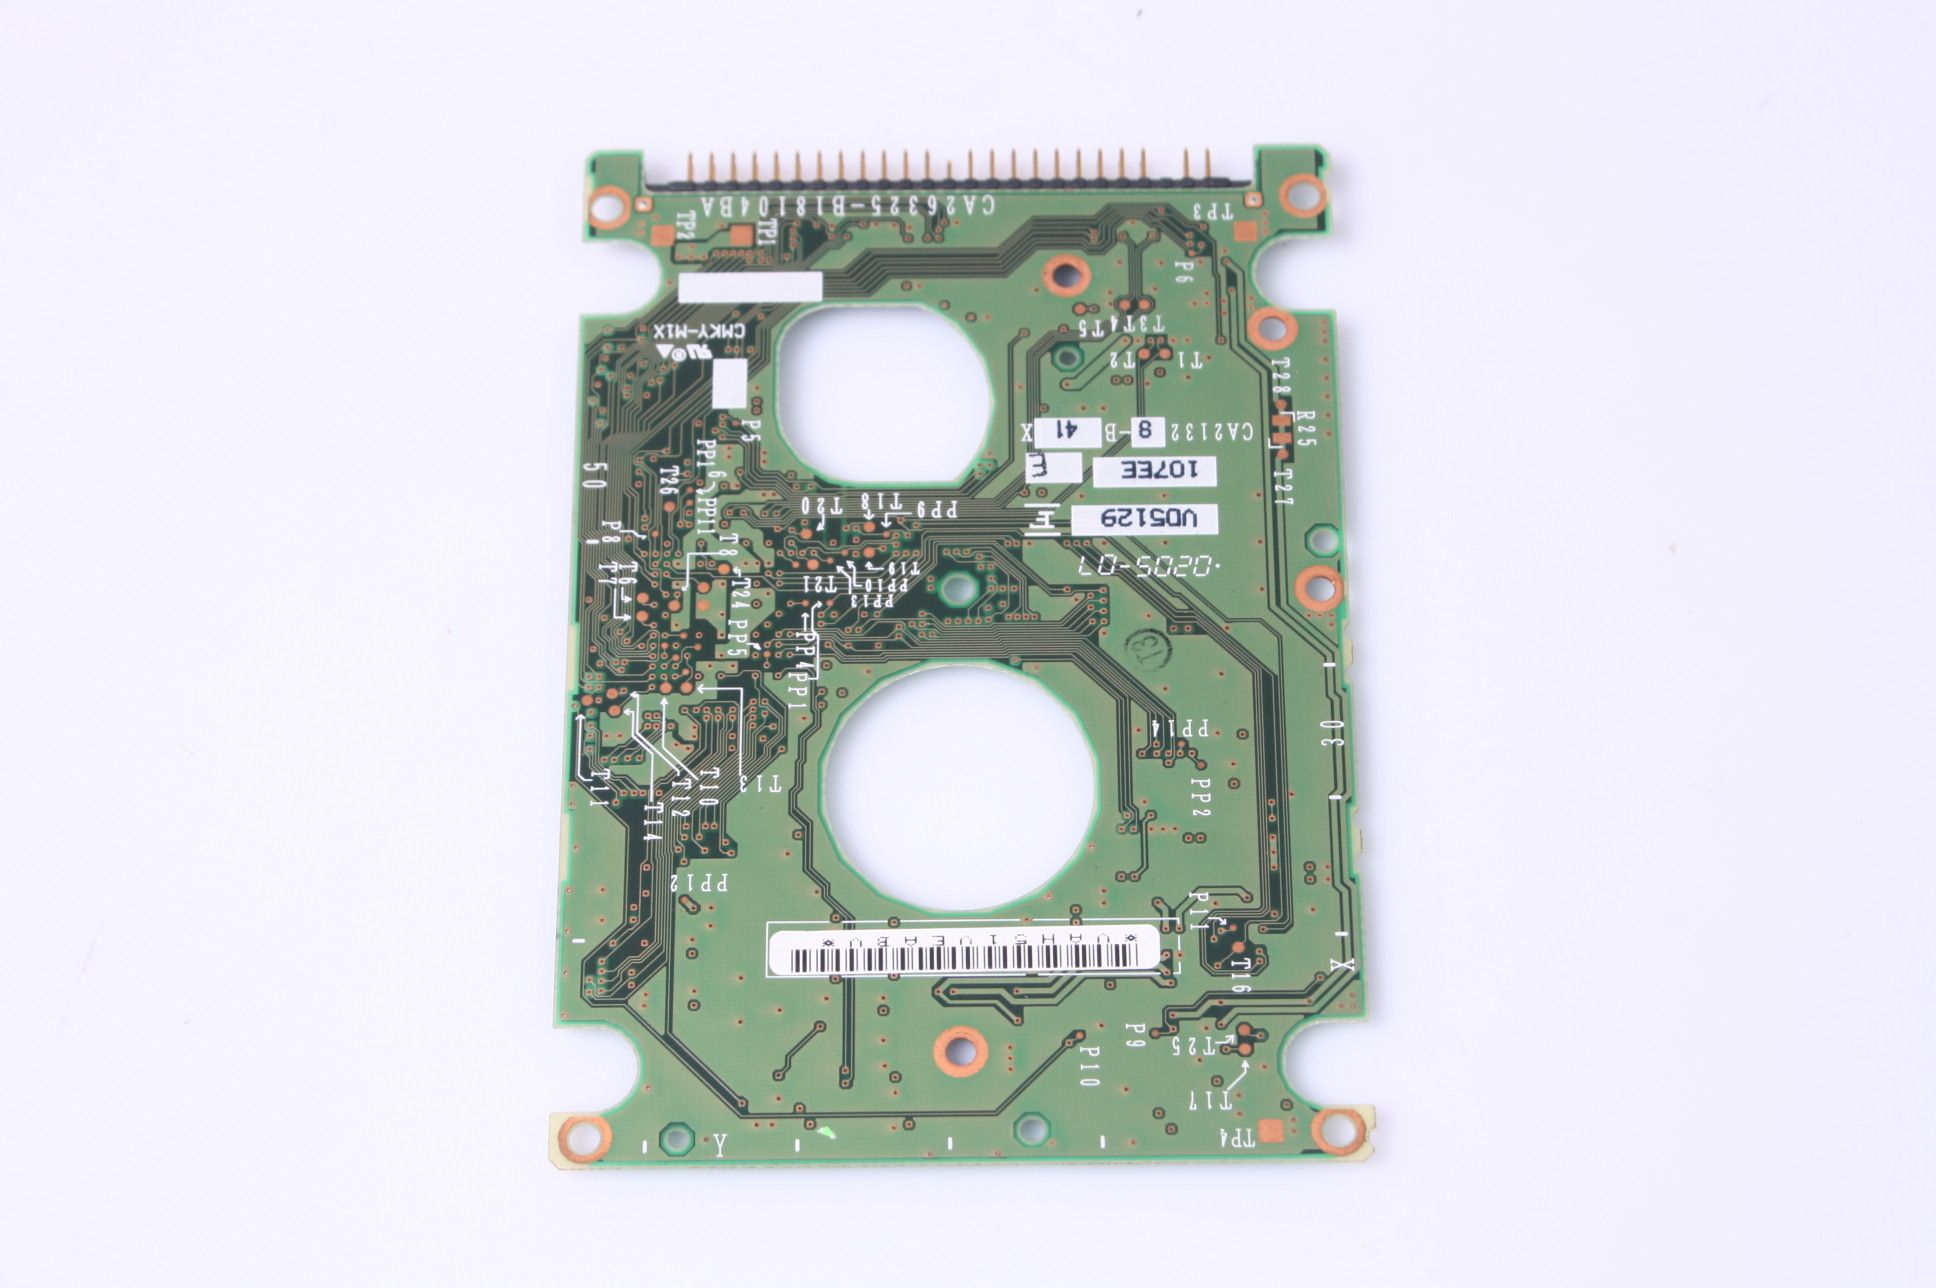 FUJITSU MHT2040AH 40GB 2.5 IDE HARD DRIVE / PCB (CIRCUIT BOARD) ONLY FOR DA